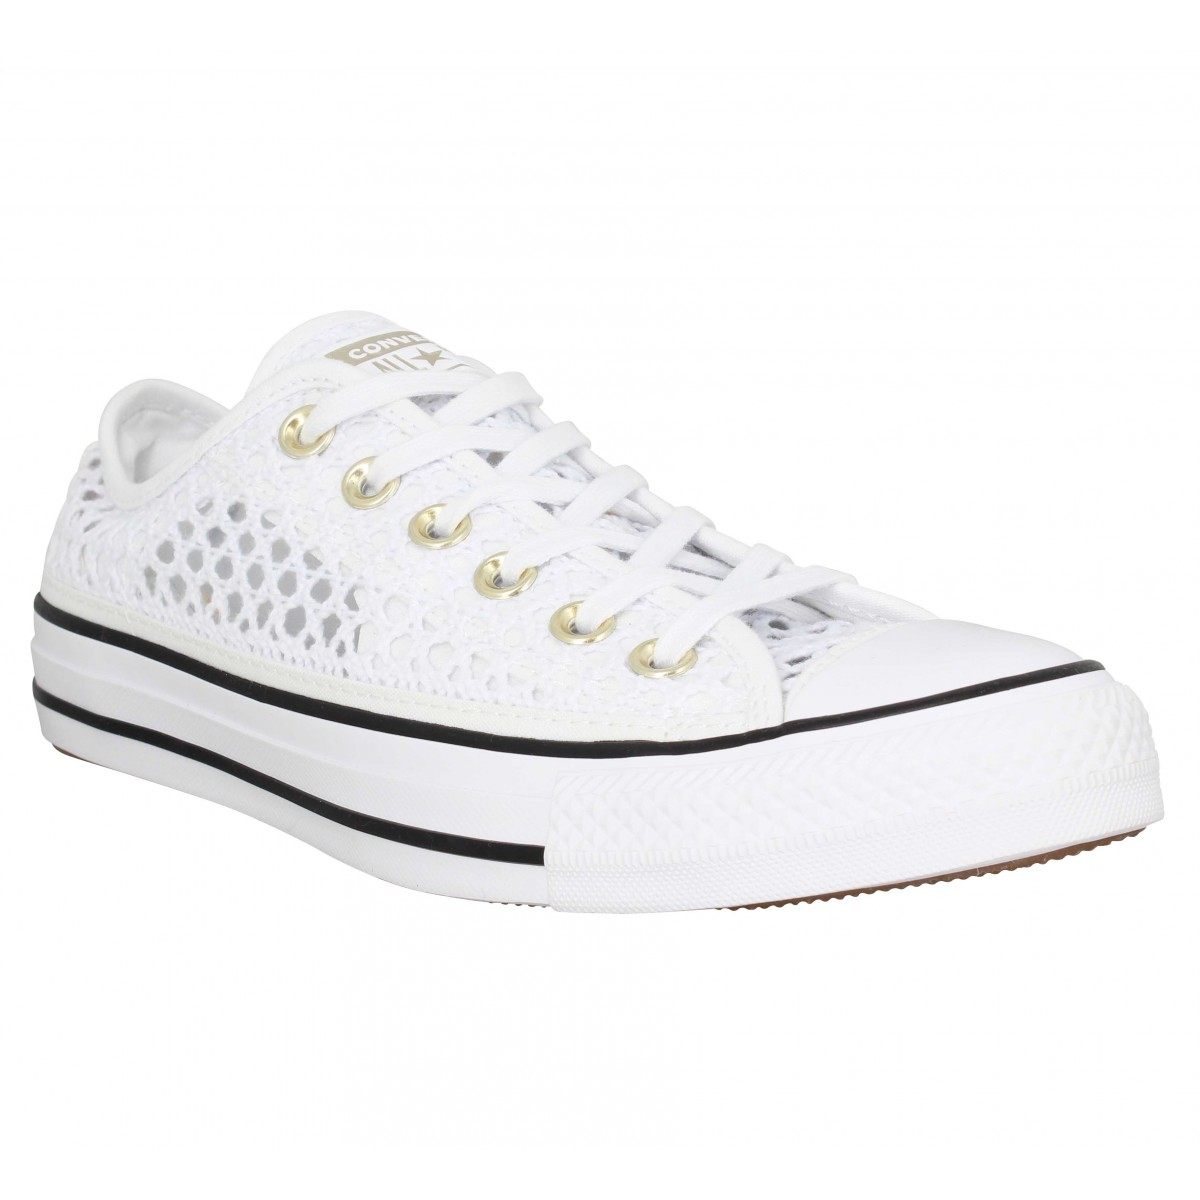 Baskets CONVERSE Chuck Taylor All Star toile Femme Resille